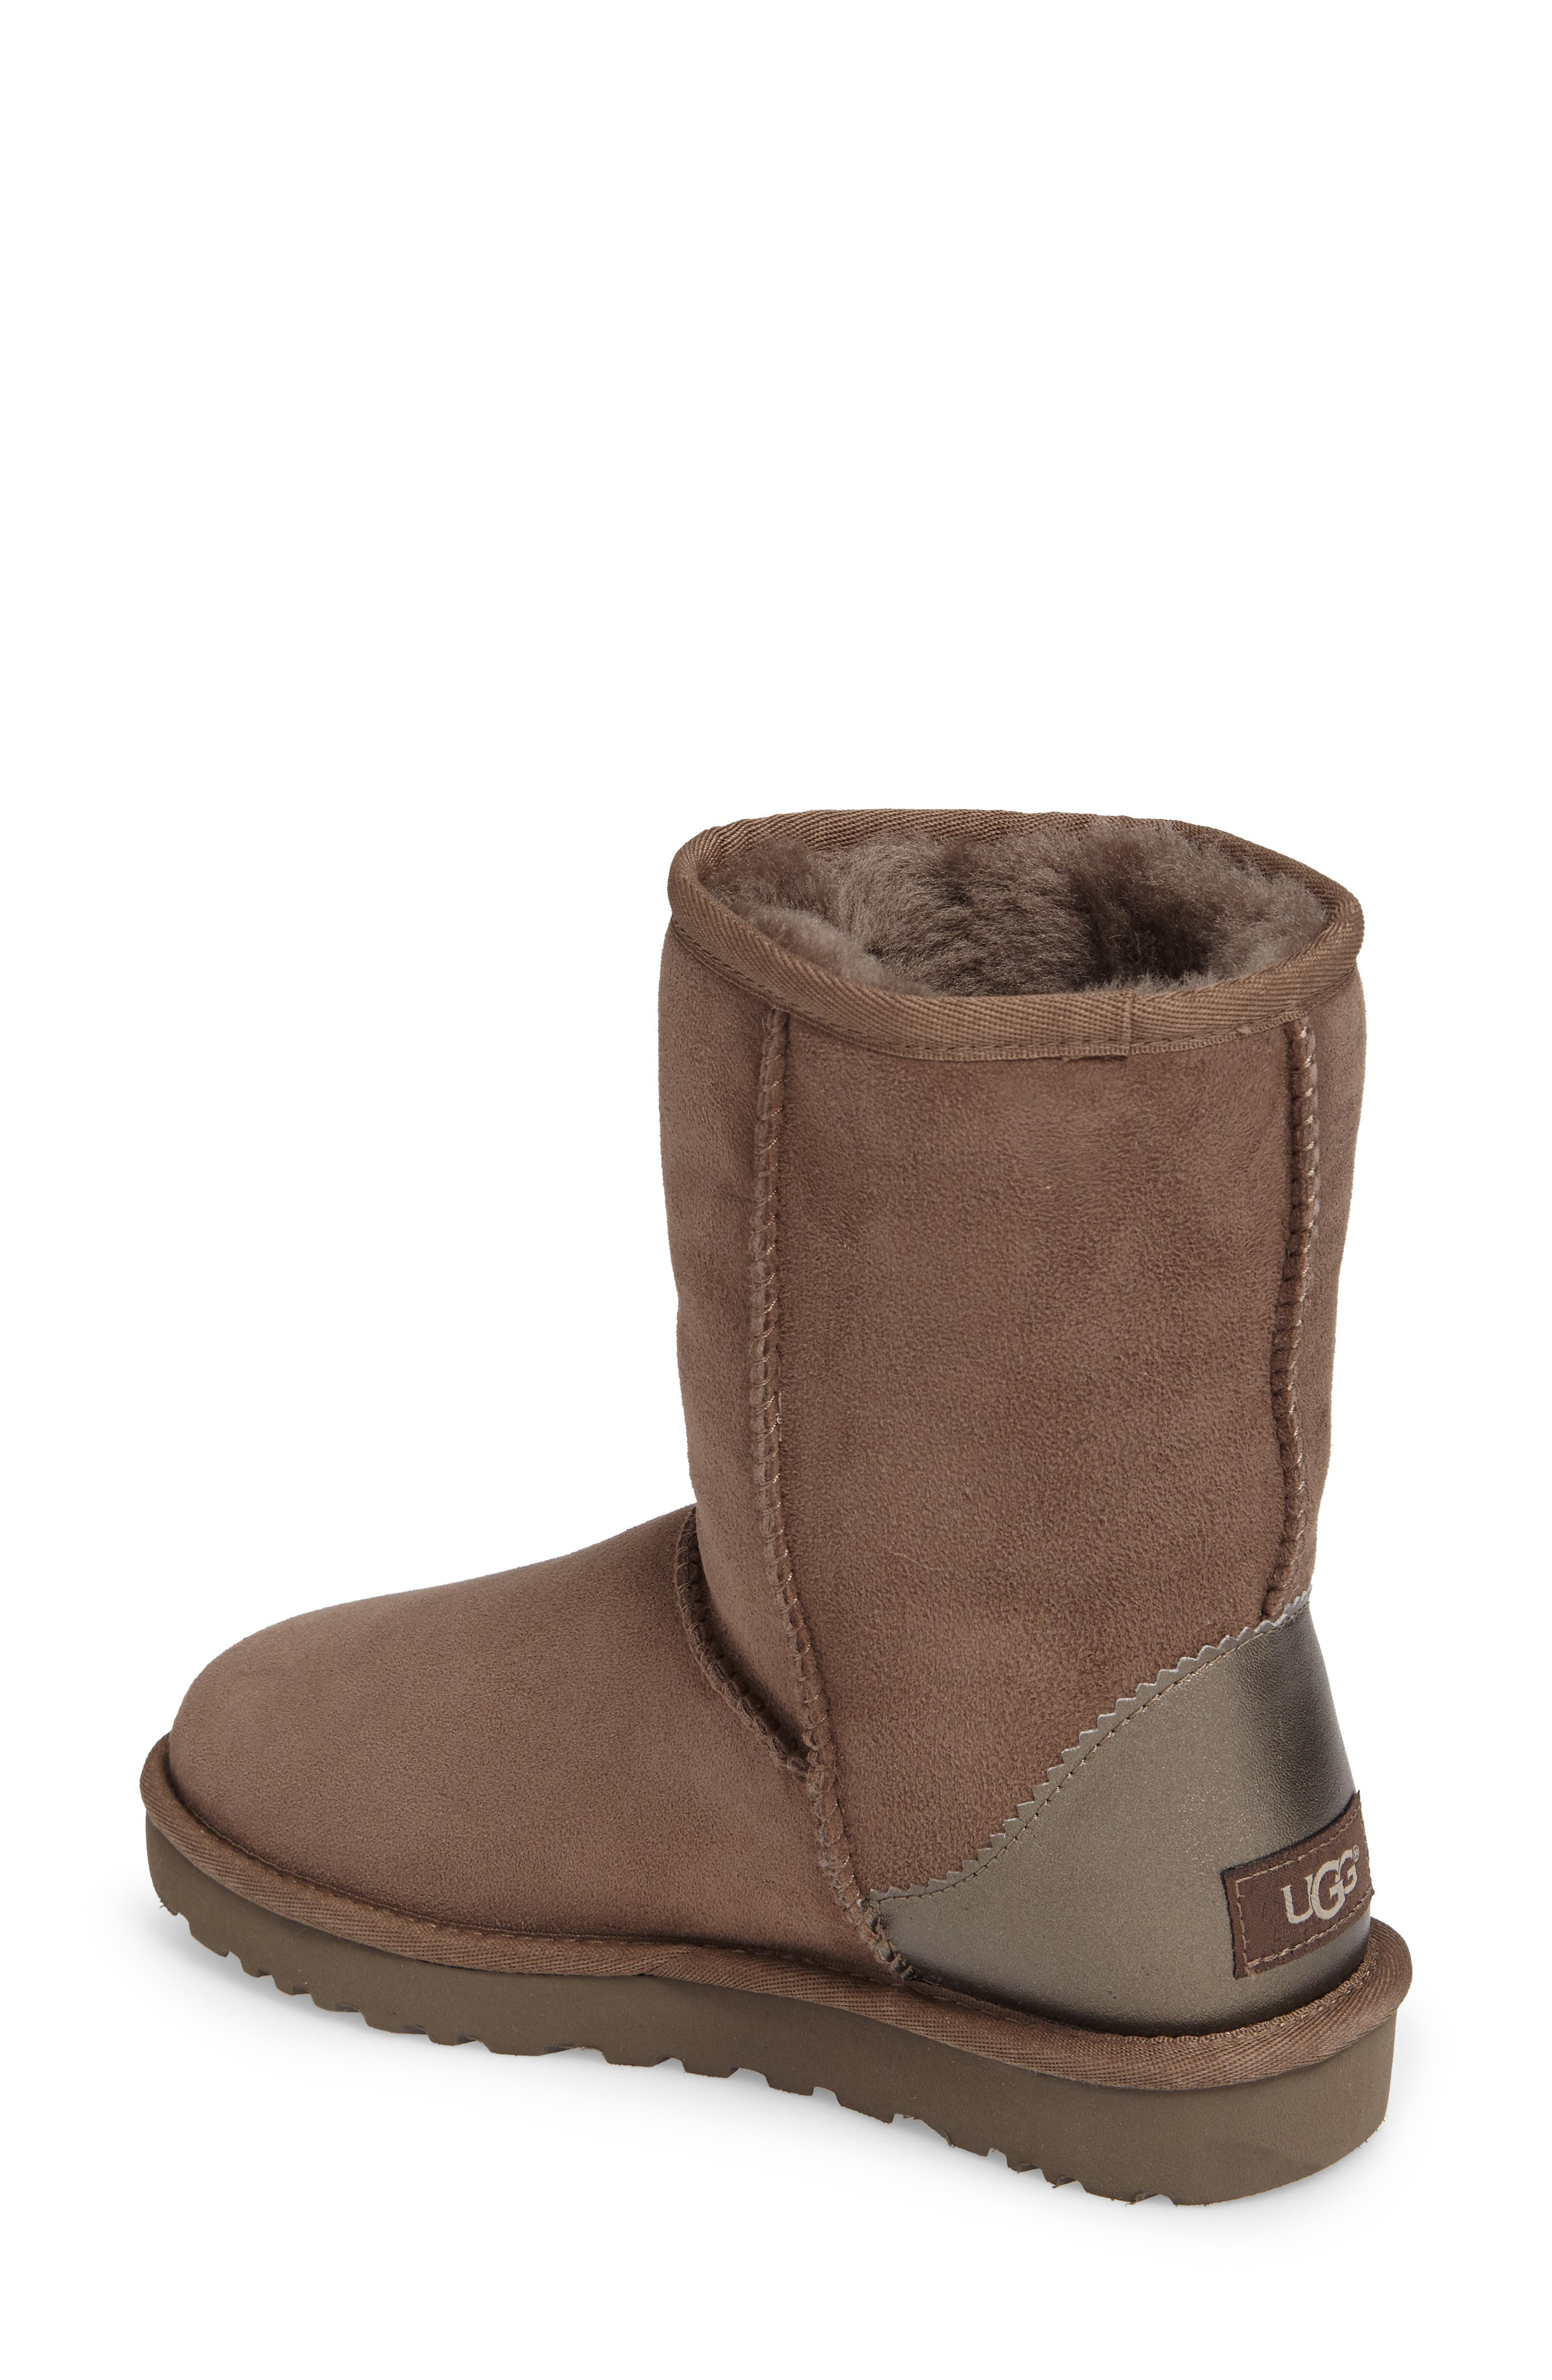 Classic II Short Boot,                             Alternate thumbnail 2, color,                             023